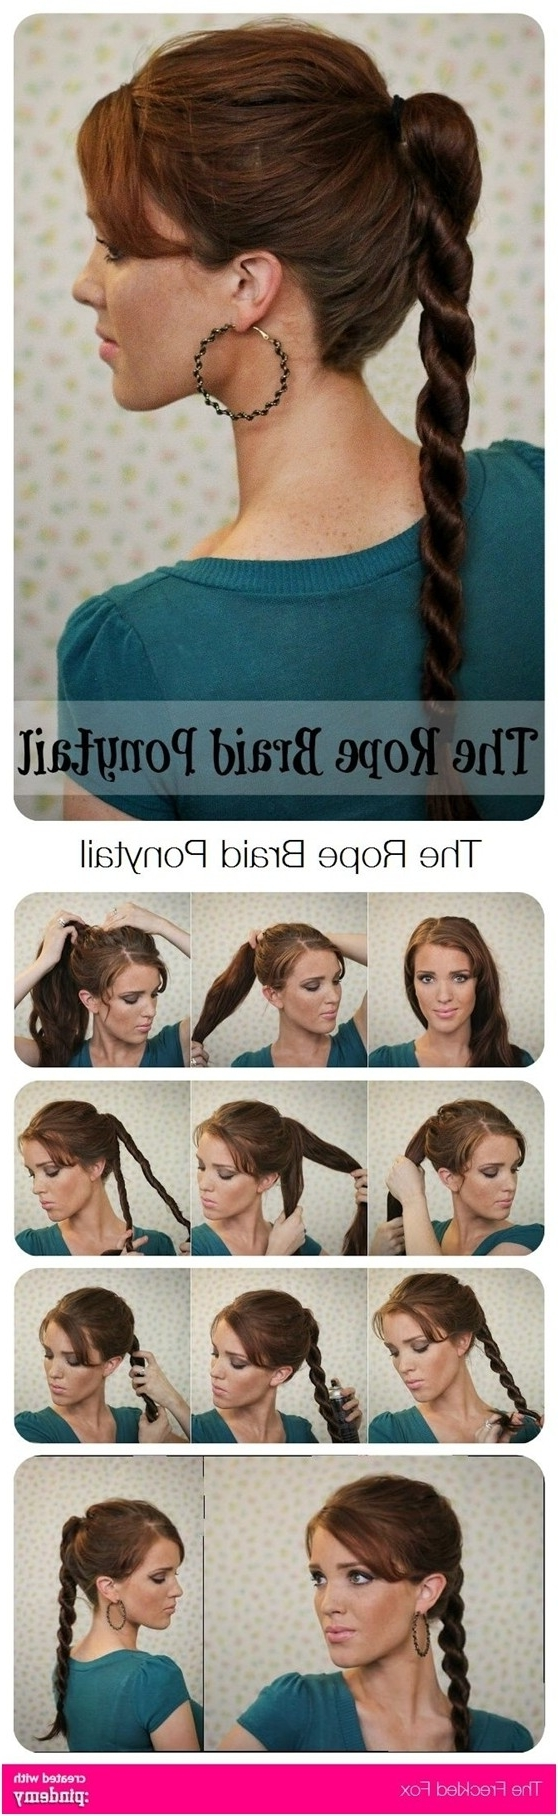 Widely Used Pony Hairstyles With Wrap Around Braid For Short Hair For 15 Cute & Easy Ponytails – Sure Champ (View 20 of 20)